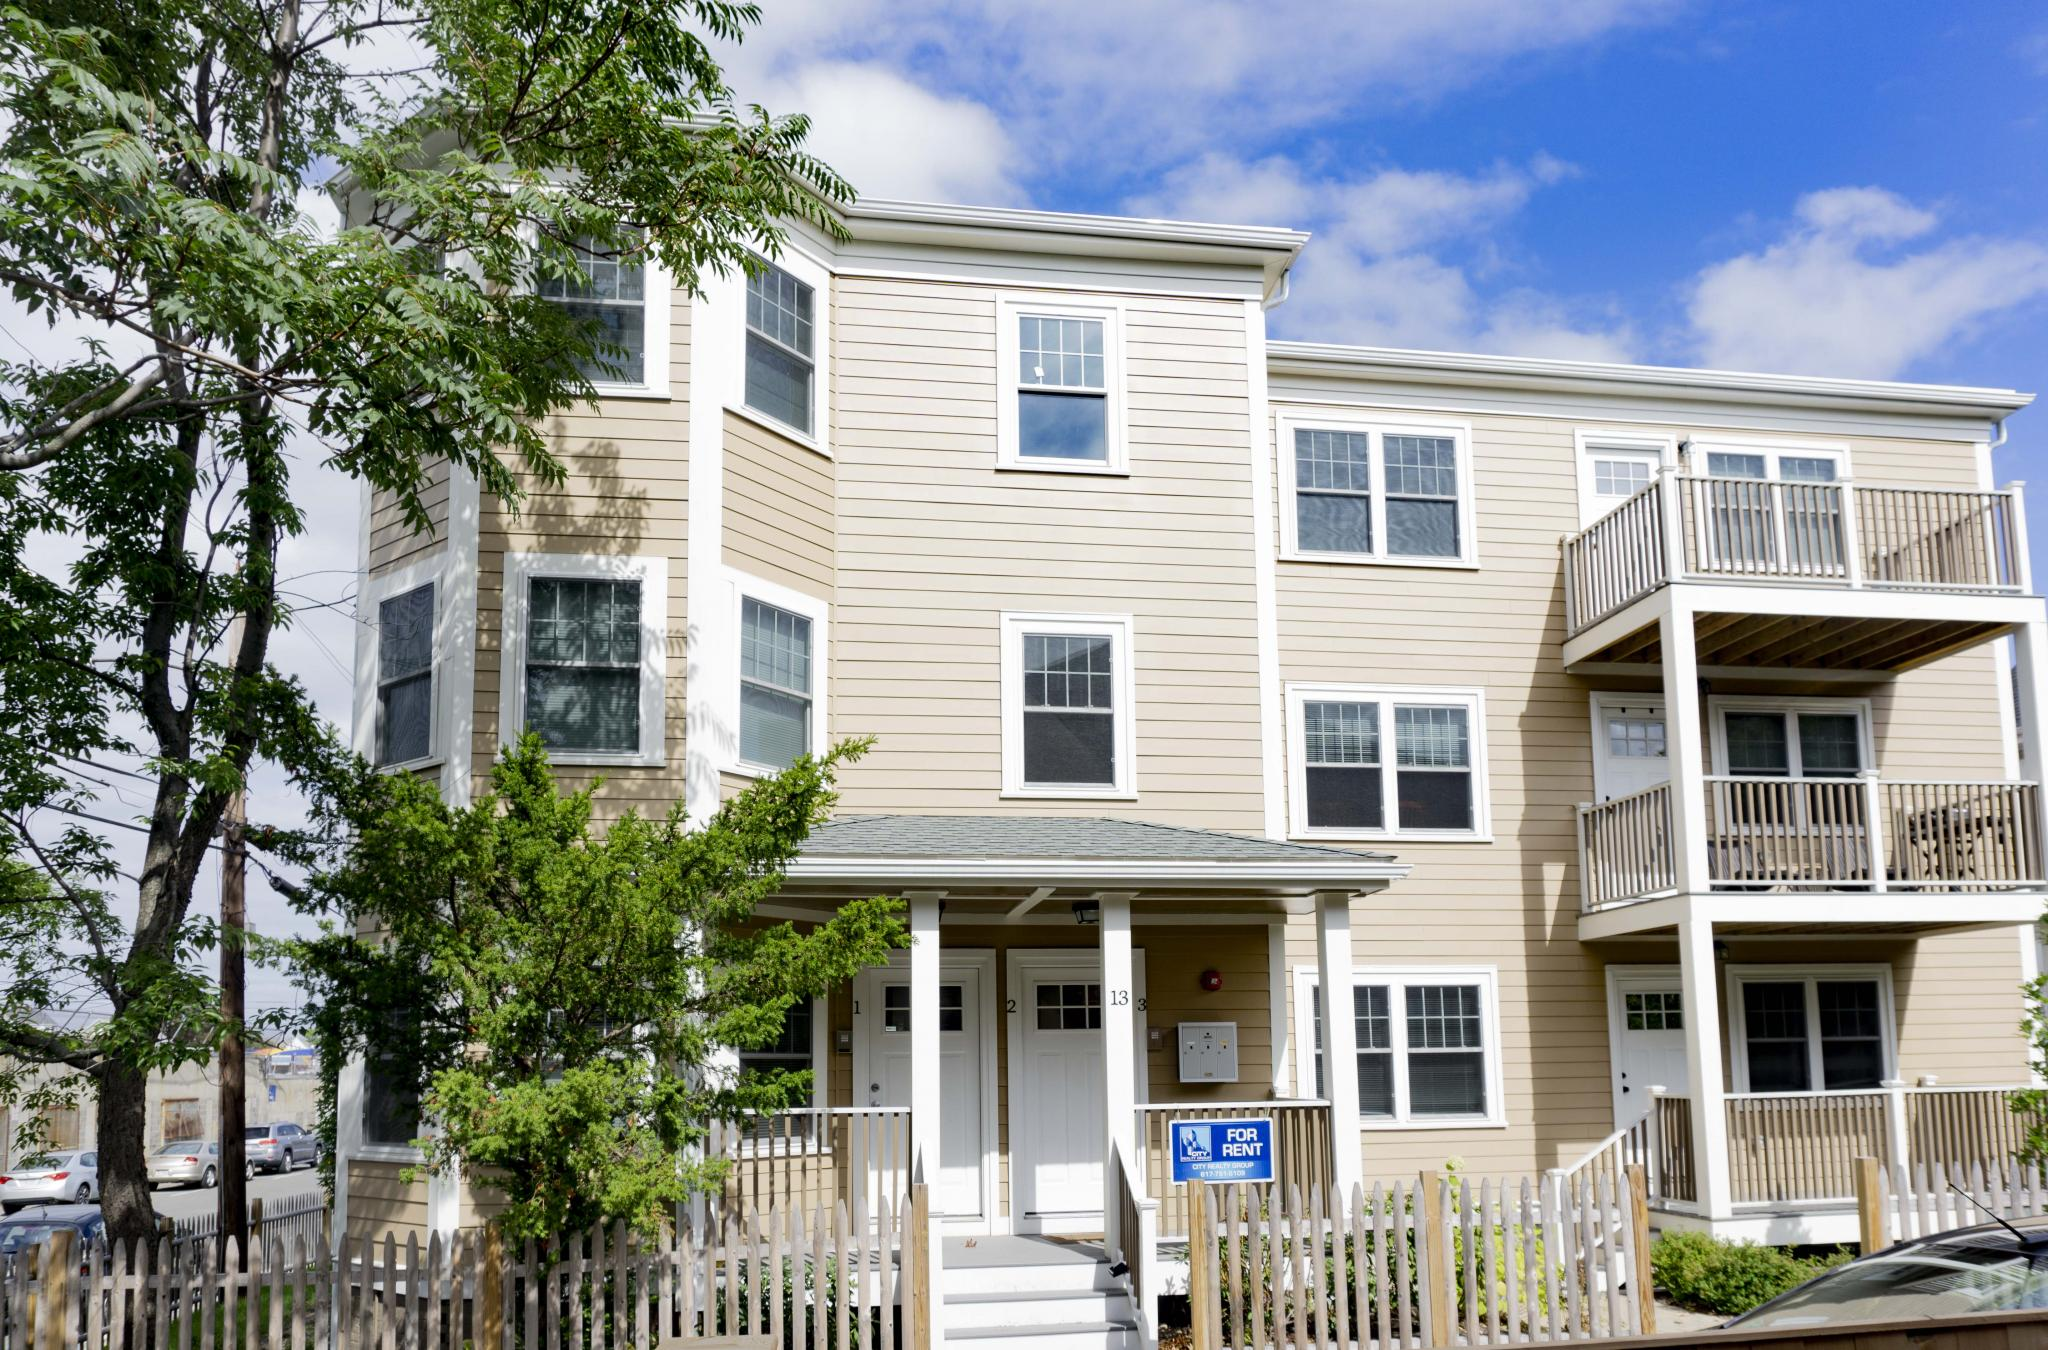 4 Bd on Roberts St., 2 Bath, Parking For Rent